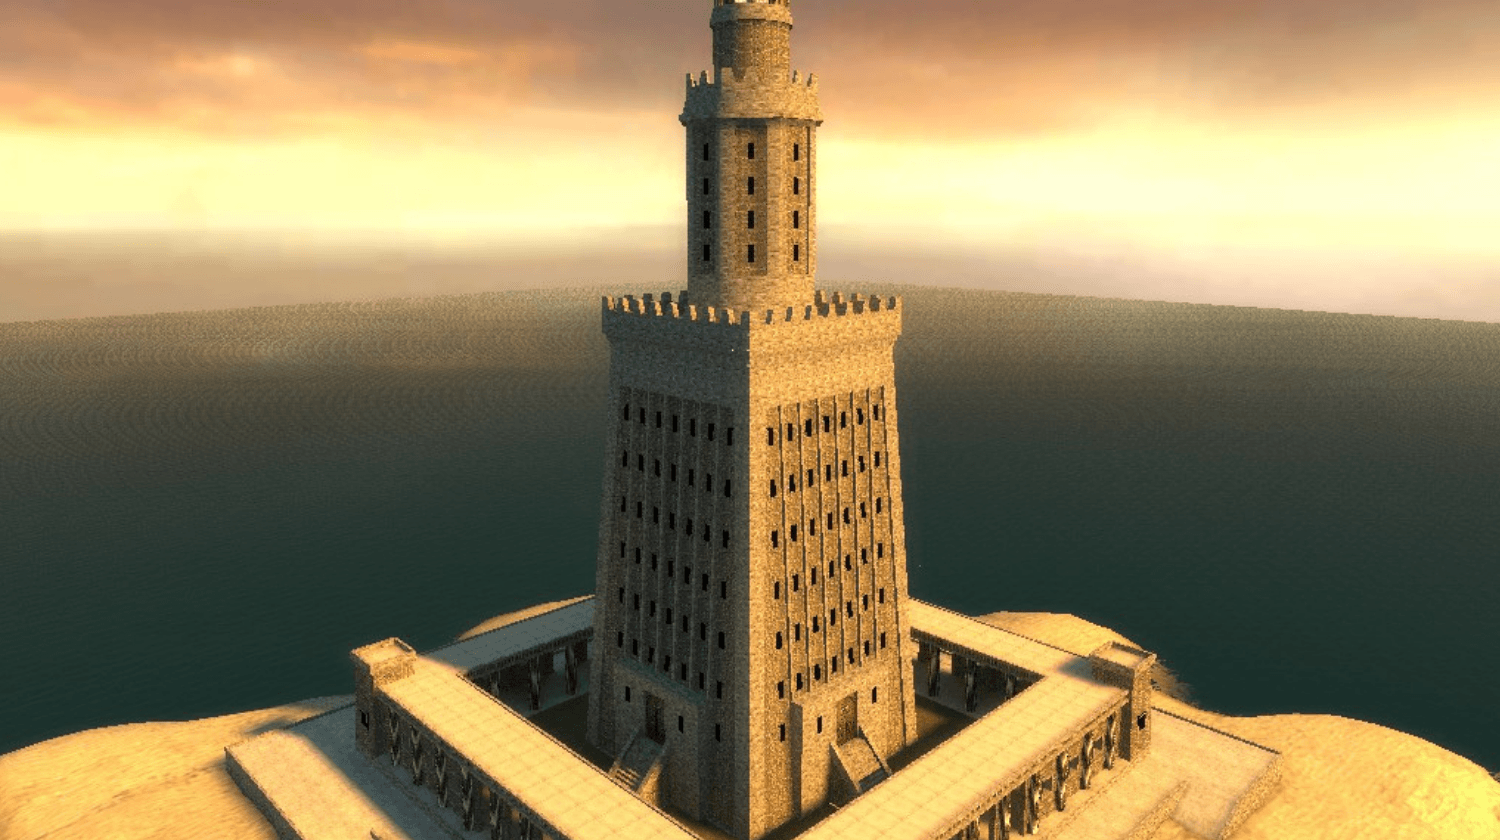 the ancient city of alexandria